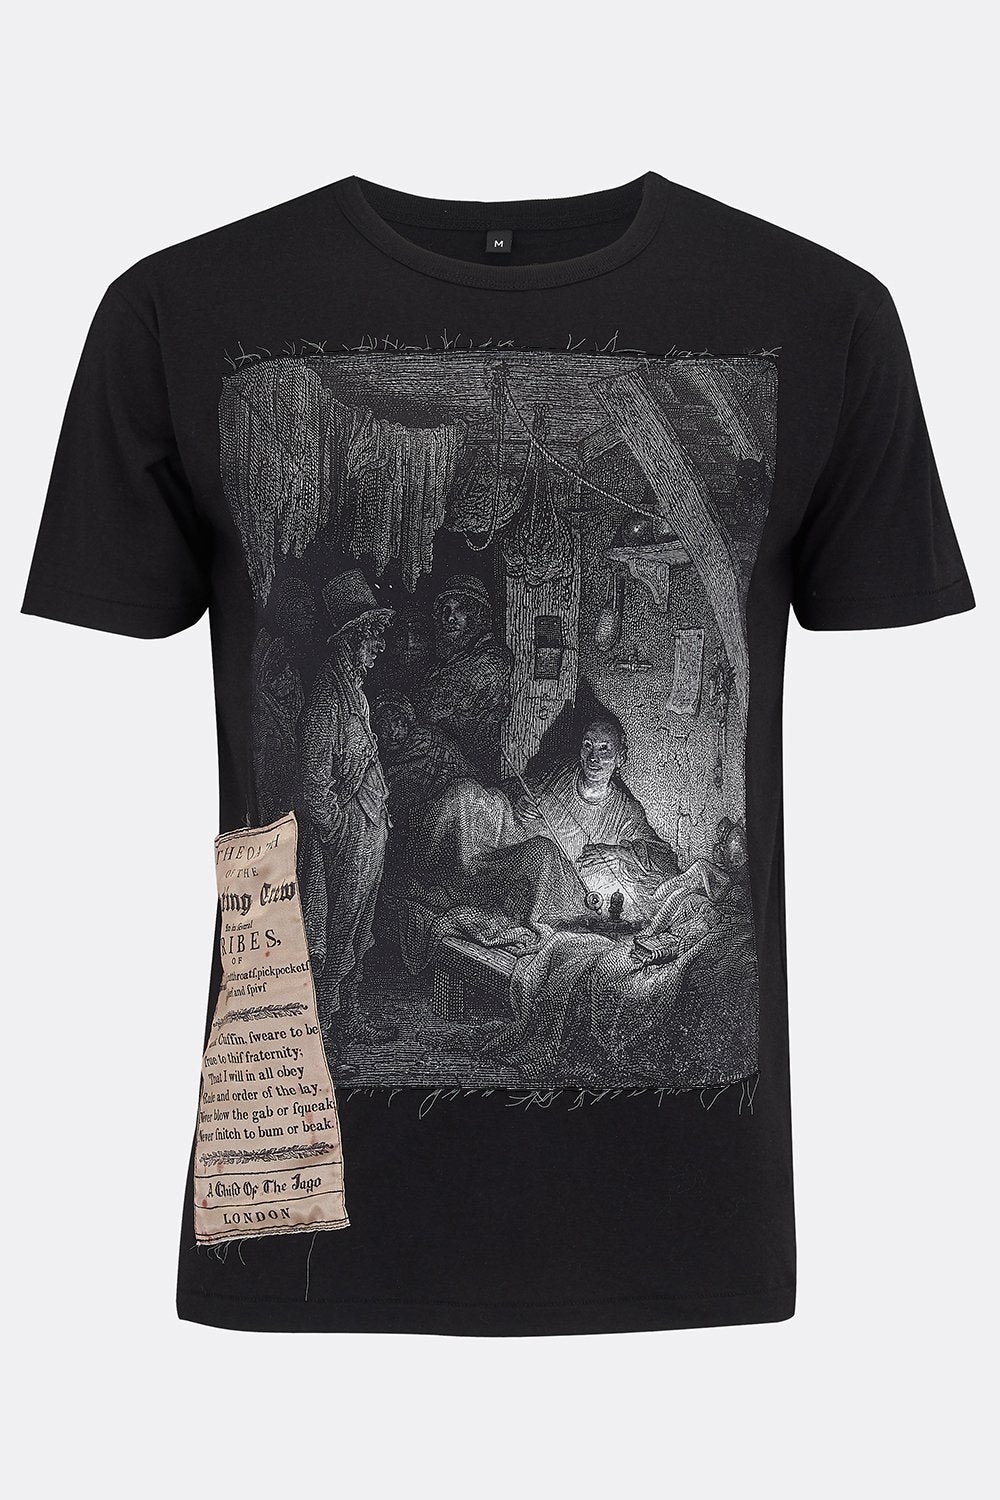 LIMEHOUSE BLACK TEE SHIRT-T shirts-A Child Of The Jago